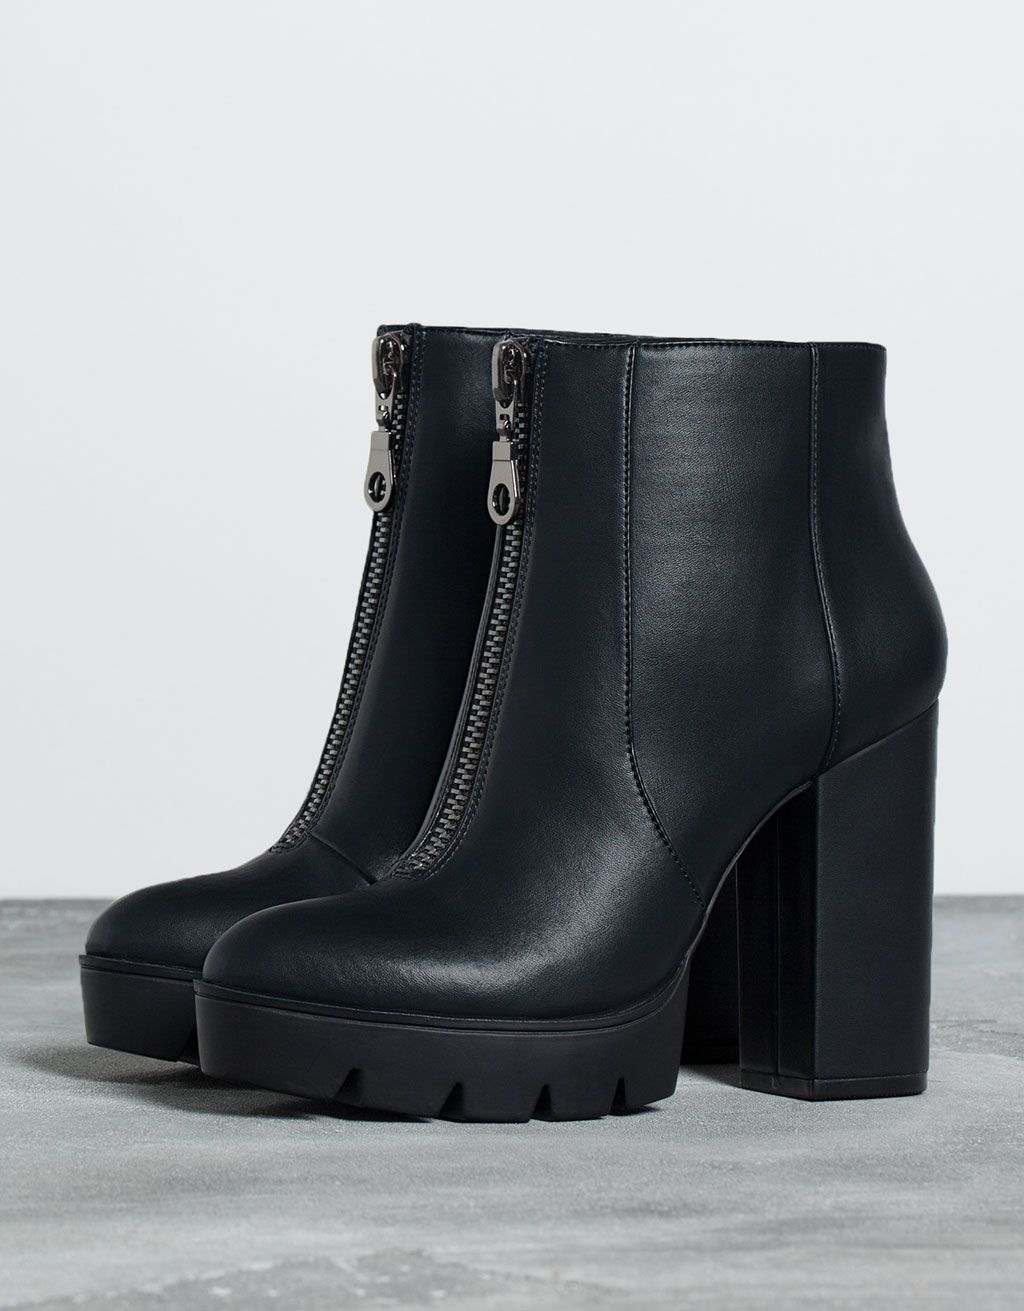 heeled zipper ankle boots - Shoes - Bershka Switzerland